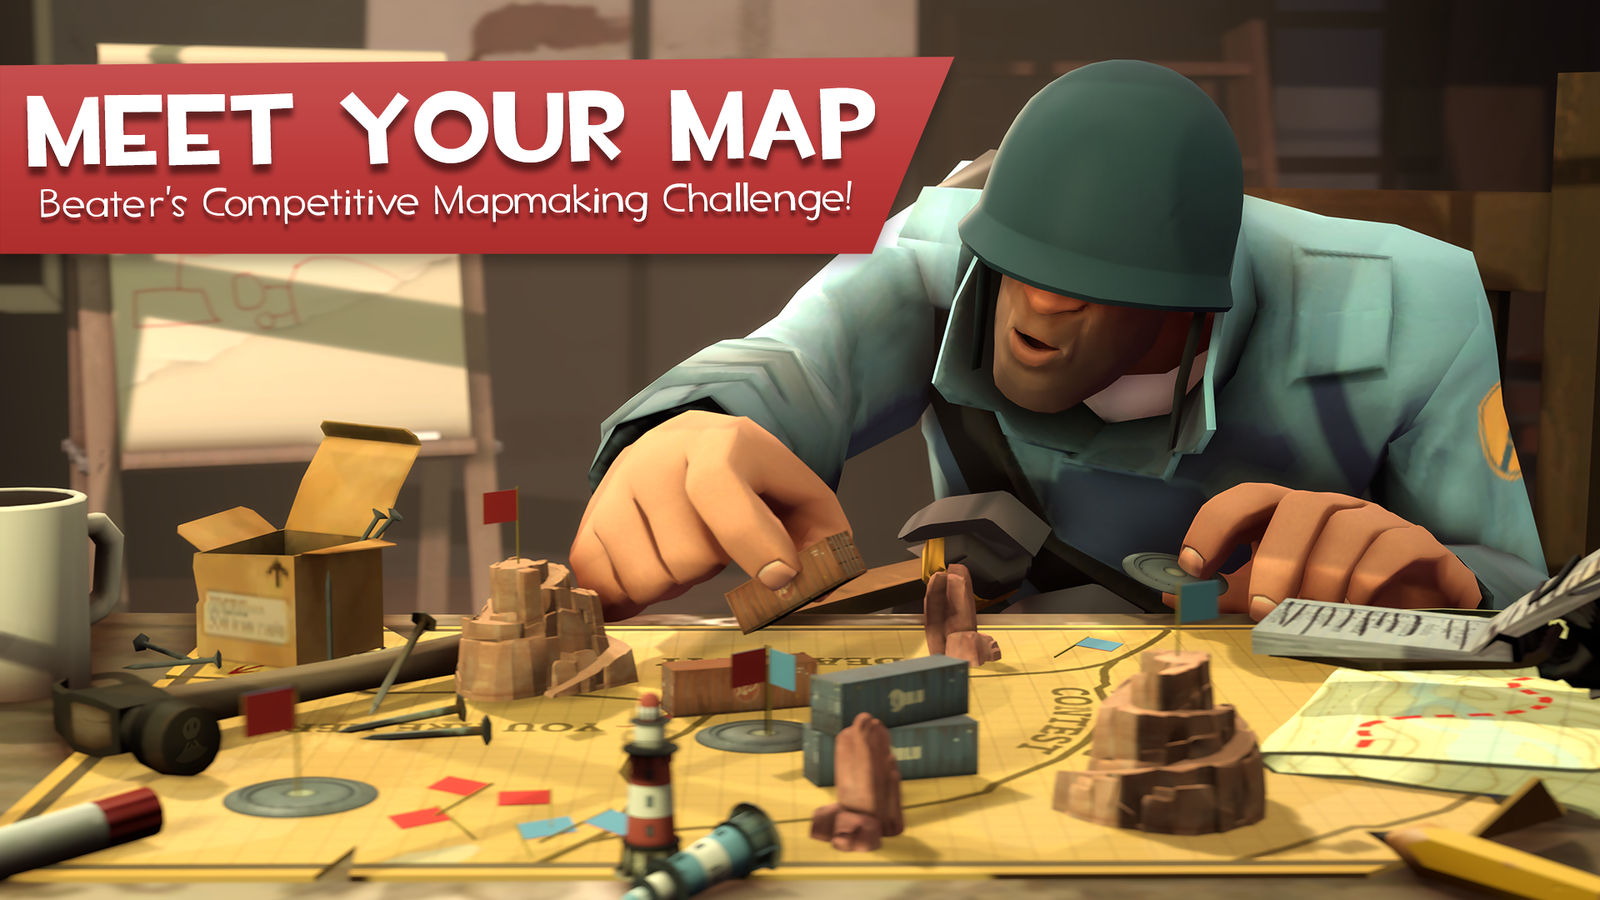 Meet Your Map! by uberchain